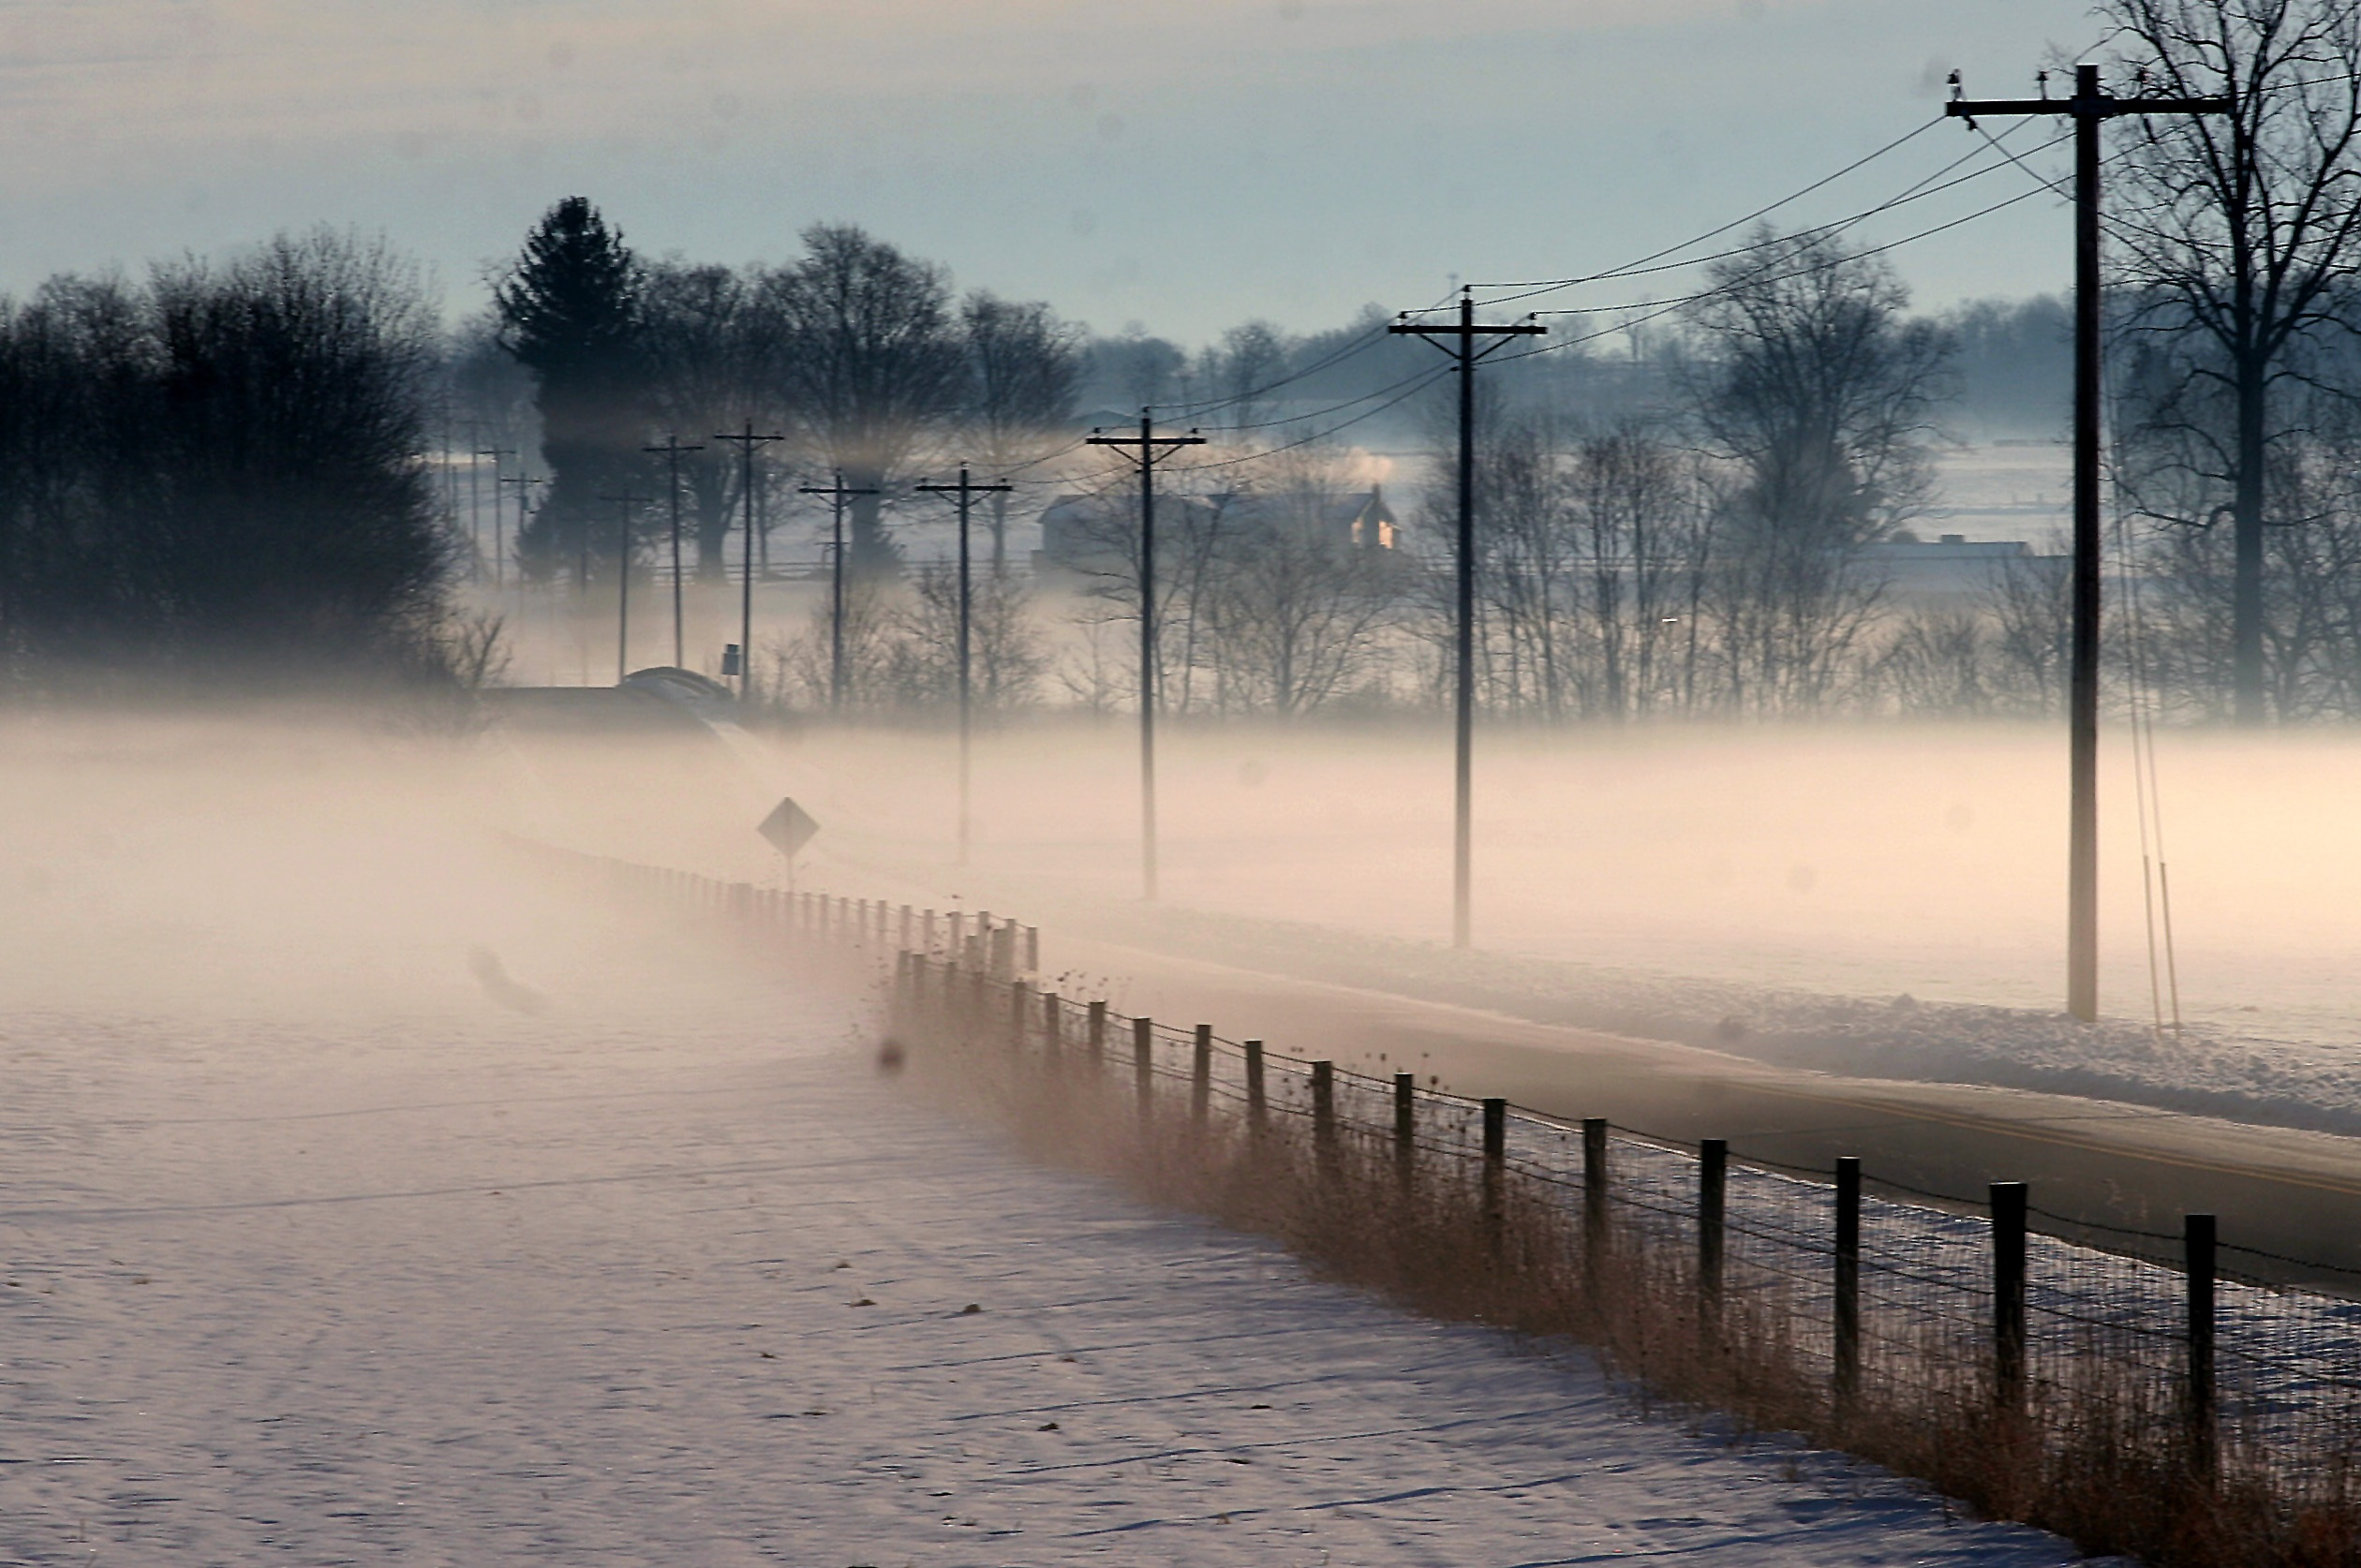 A dangerous yet beautiful combination of fog and snow.